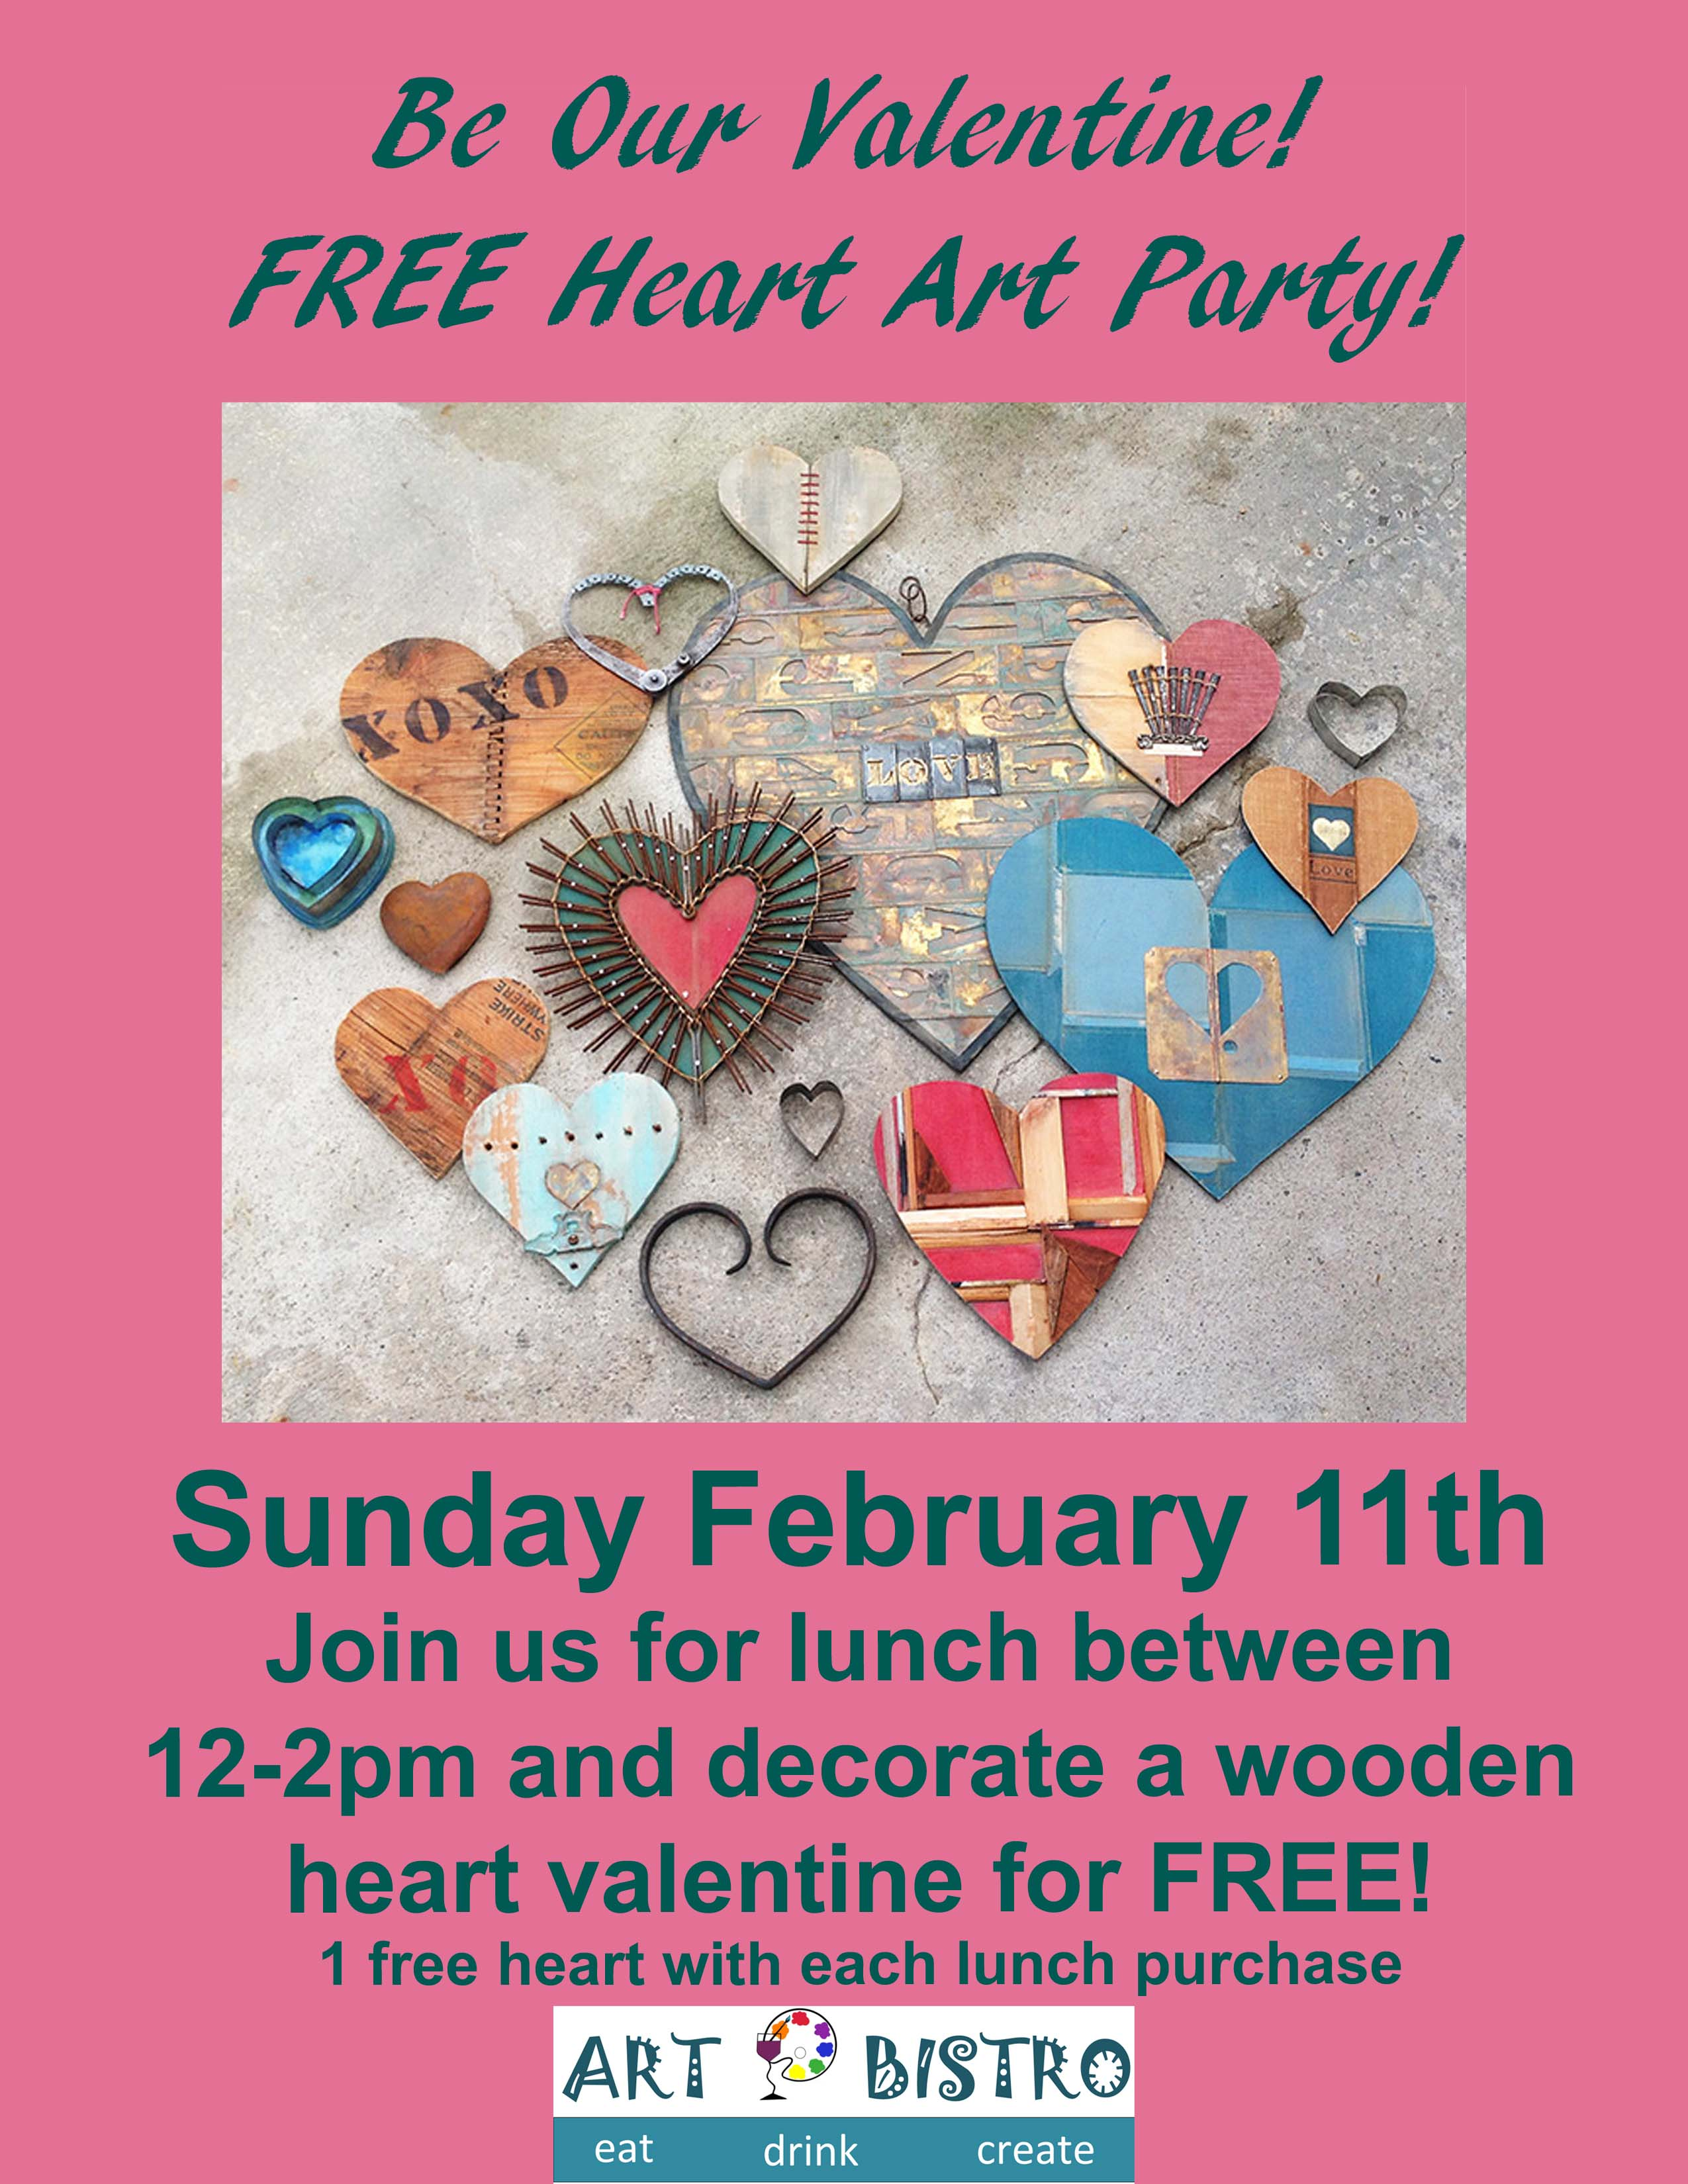 FREE Heart Art Party 2/10 for Valentine's Day